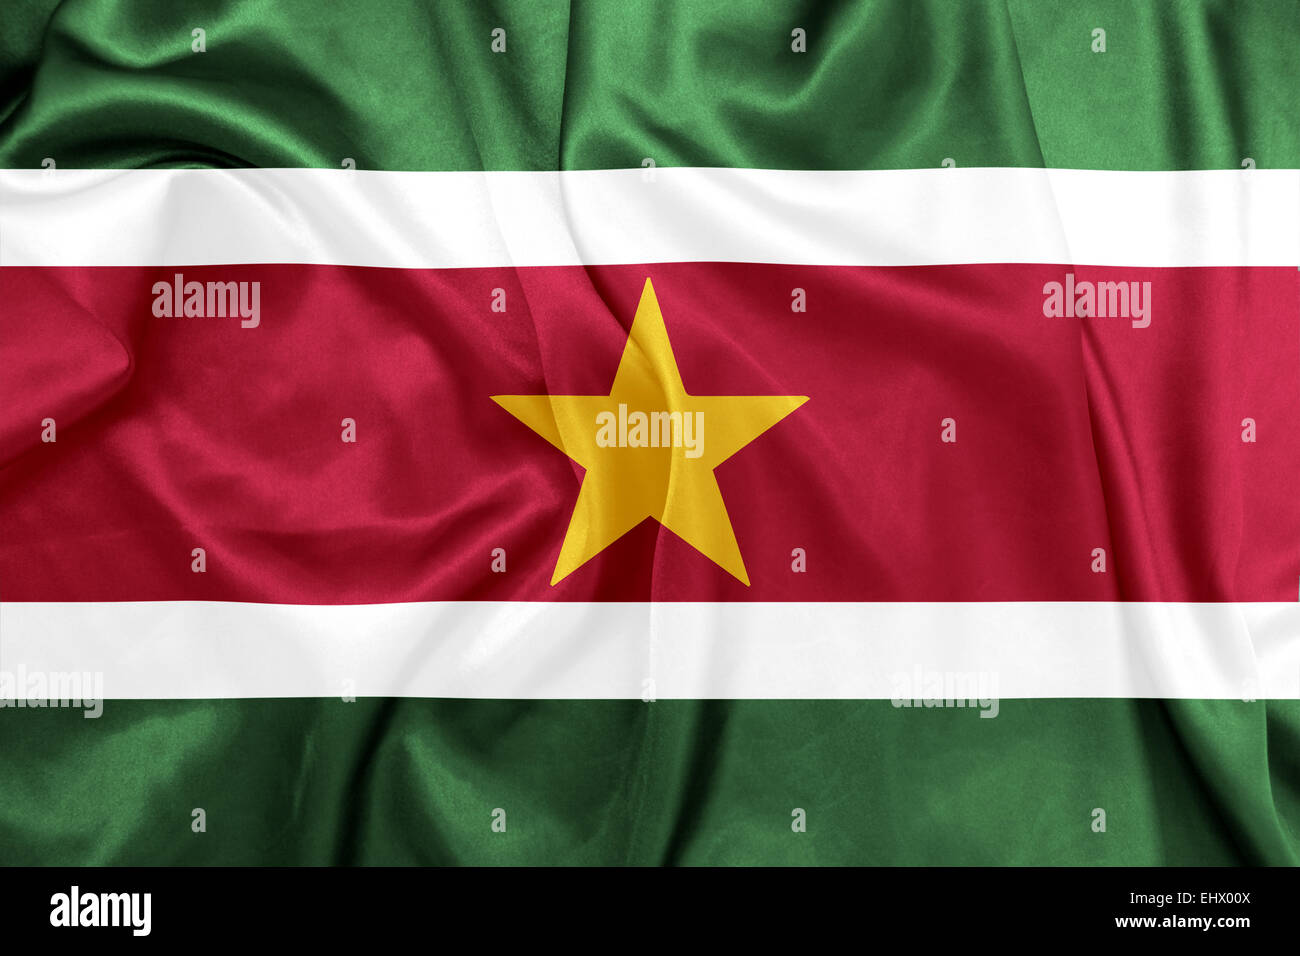 Suriname - Waving national flag on silk texture - Stock Image